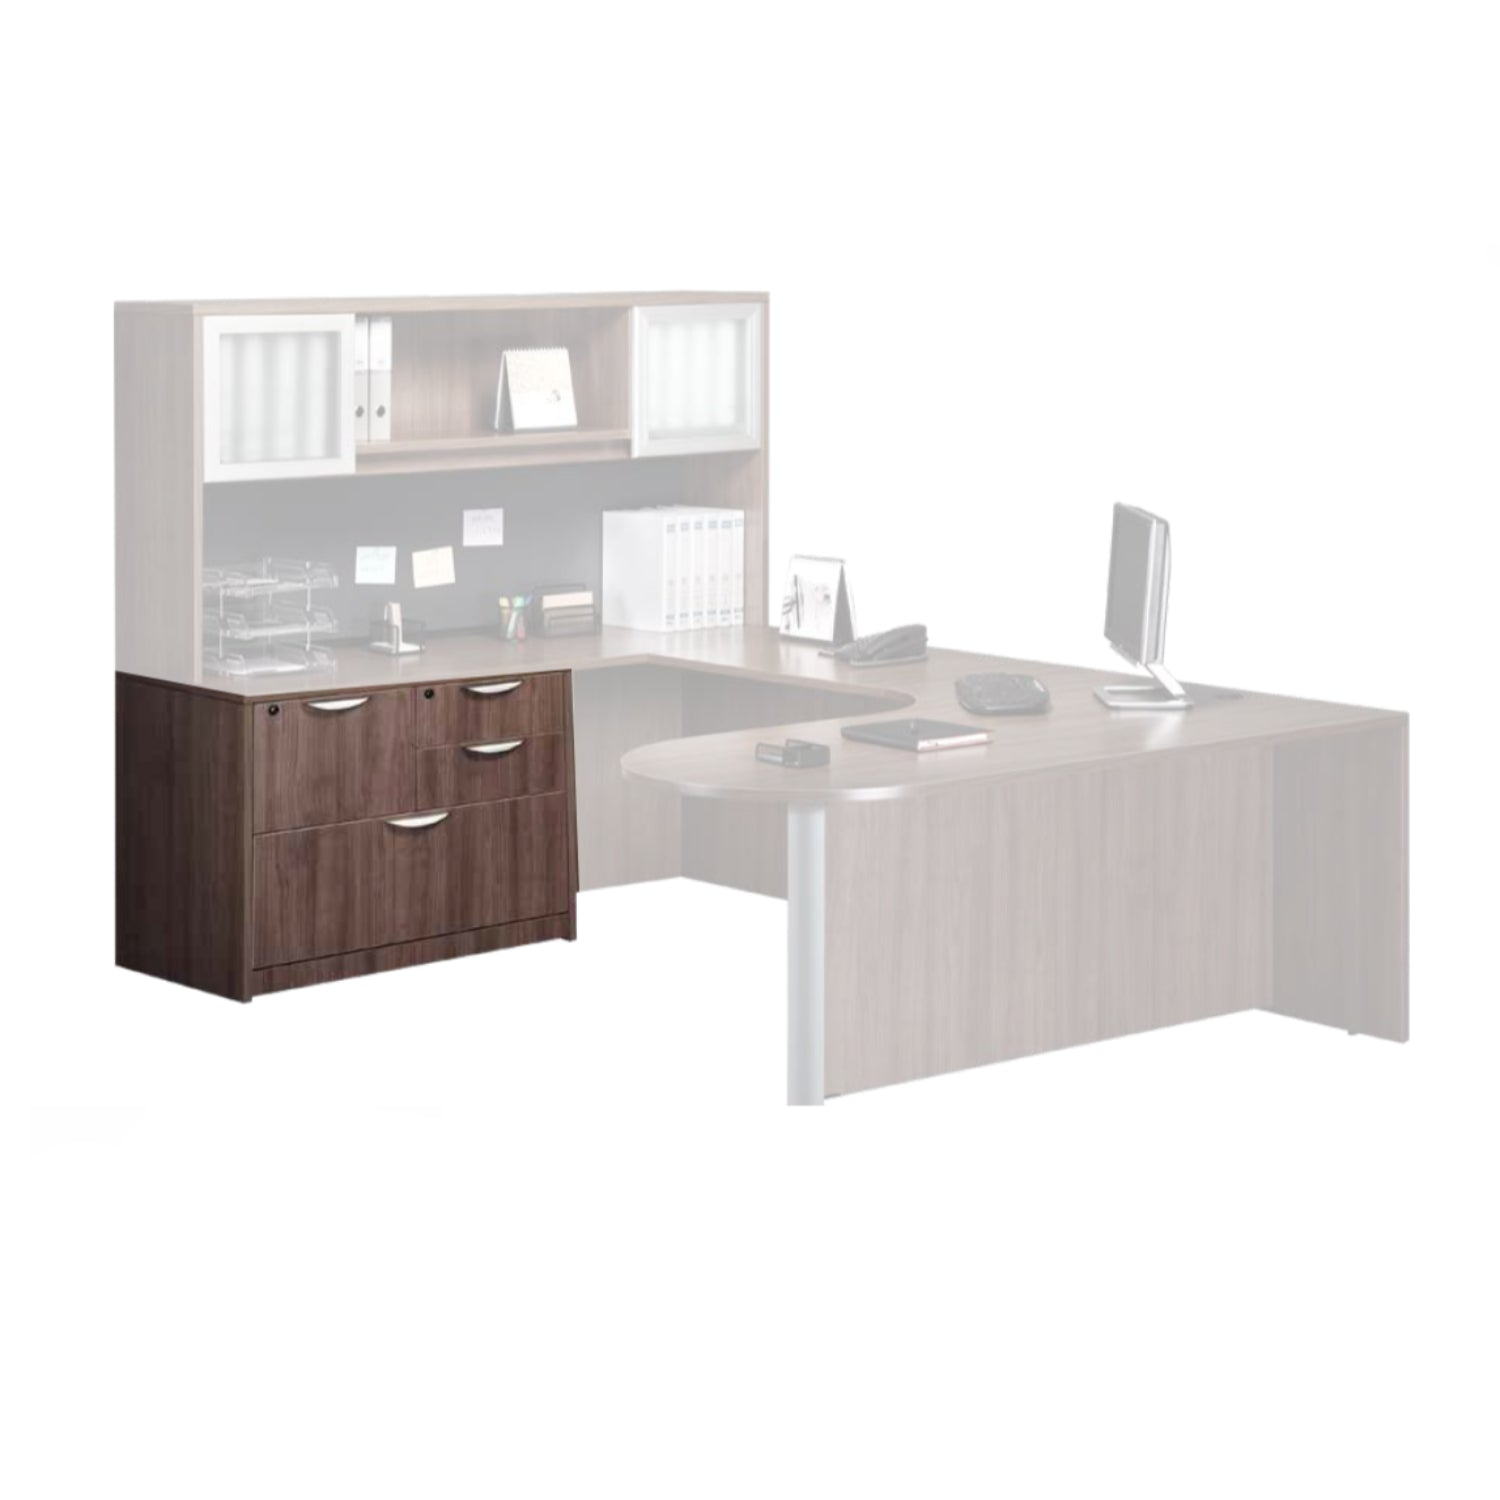 Performance - Combination Laminate Lateral File with Removable Top - Duckys Office Furniture